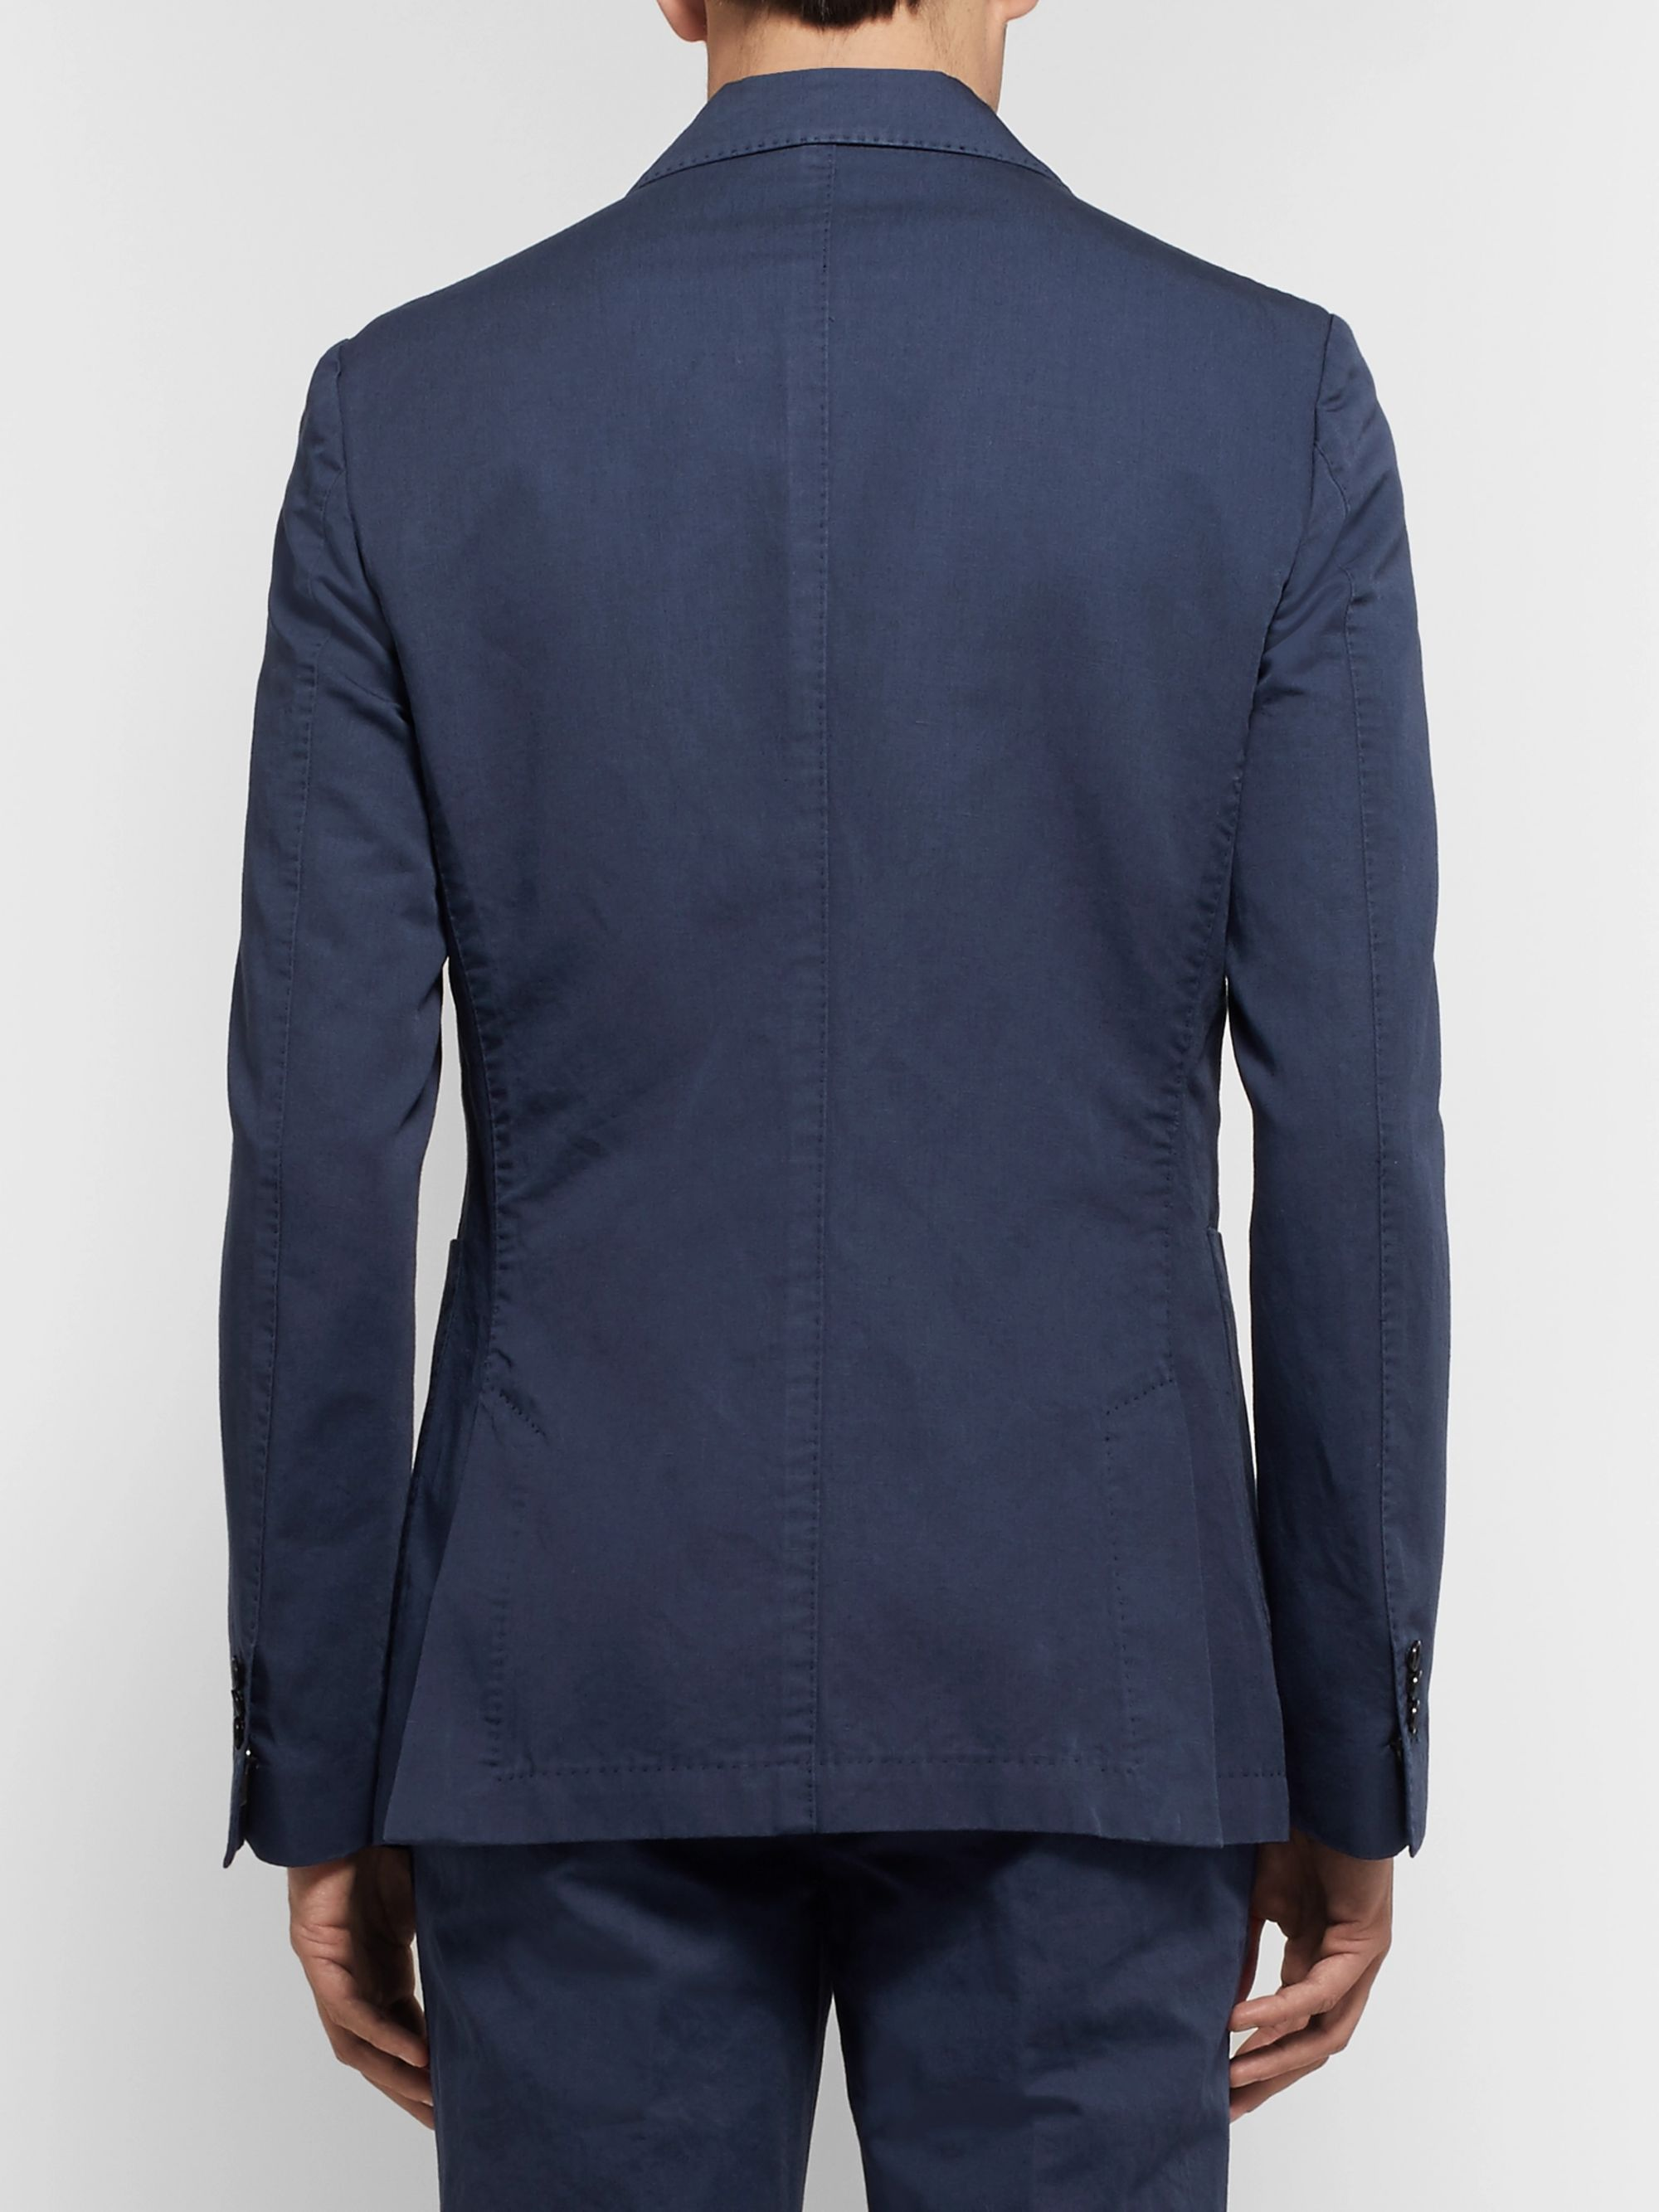 SALLE PRIVÉE Navy Ross Slim-Fit Unstructured Cotton and Linen-Blend Suit Jacket